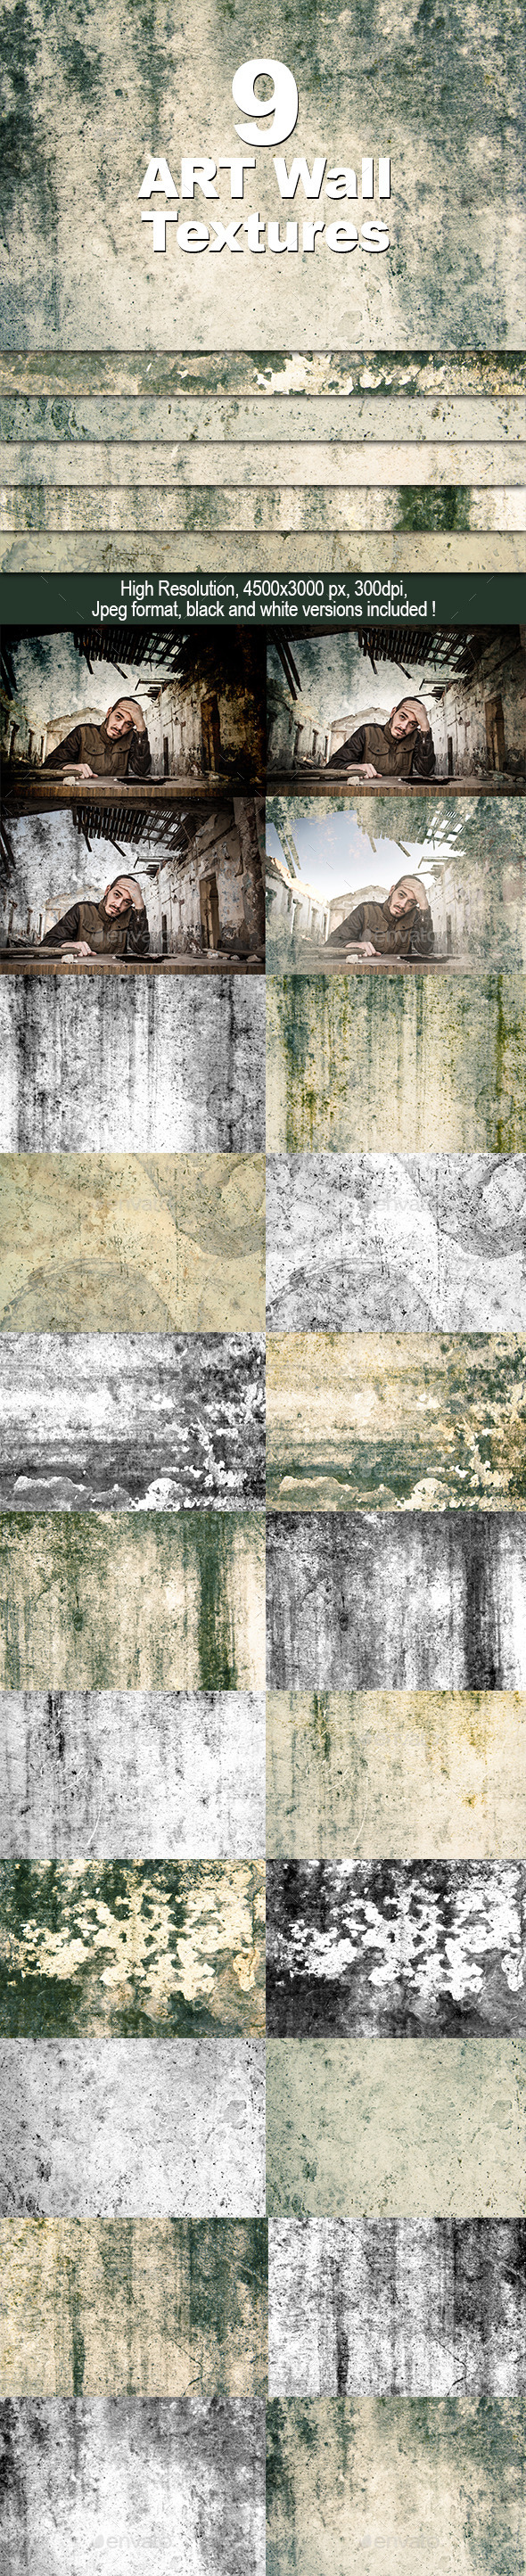 GraphicRiver Art Wall Textures 10811771